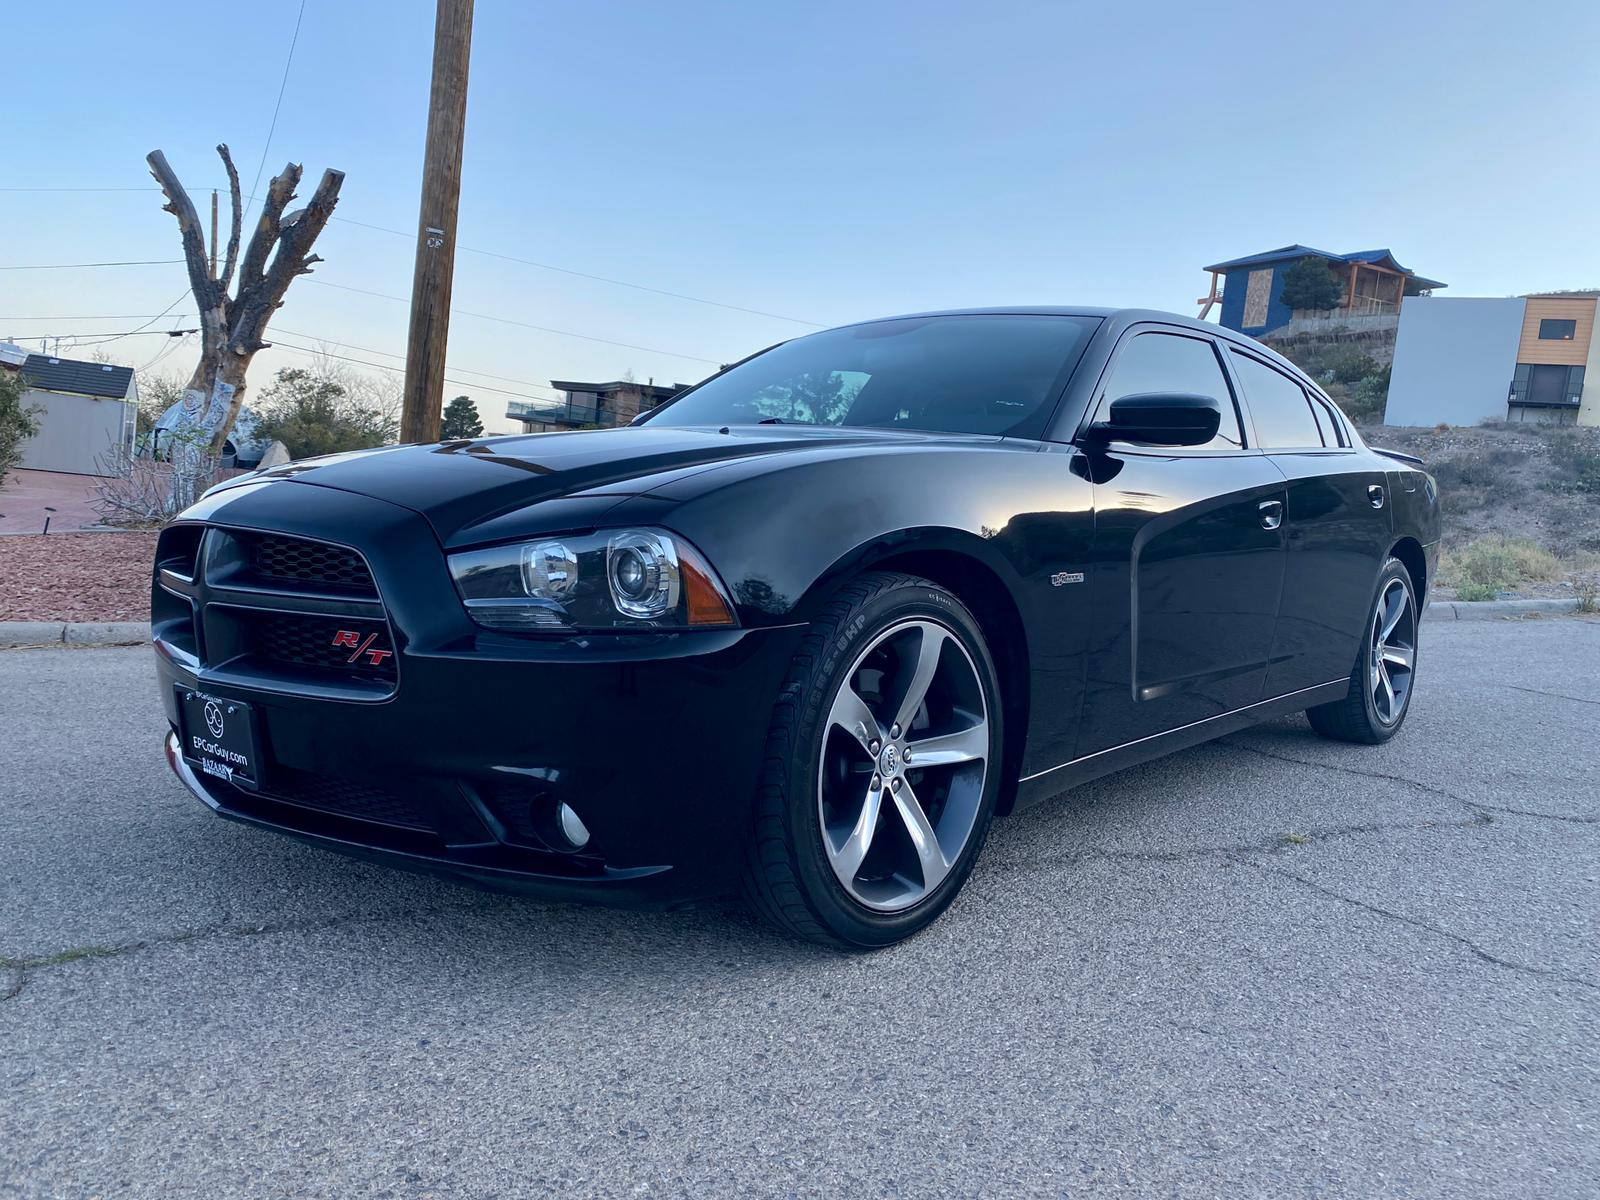 2014 DODGE CHARGER R/T 100TH ANNIVERSARY EDITION